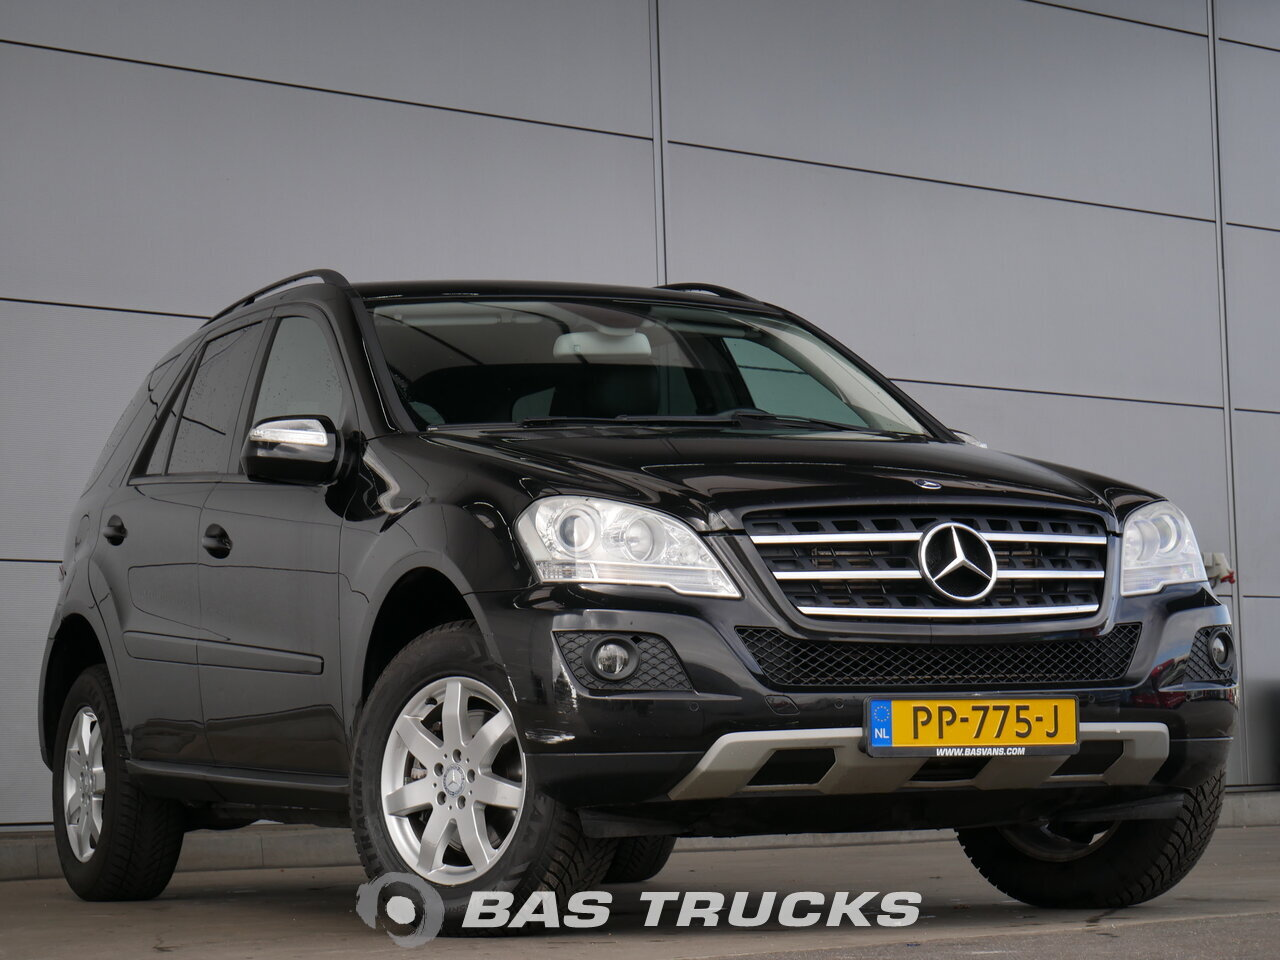 mercedes ml 280 cdi 4matic car euro norm 0 13500 bas vans. Black Bedroom Furniture Sets. Home Design Ideas